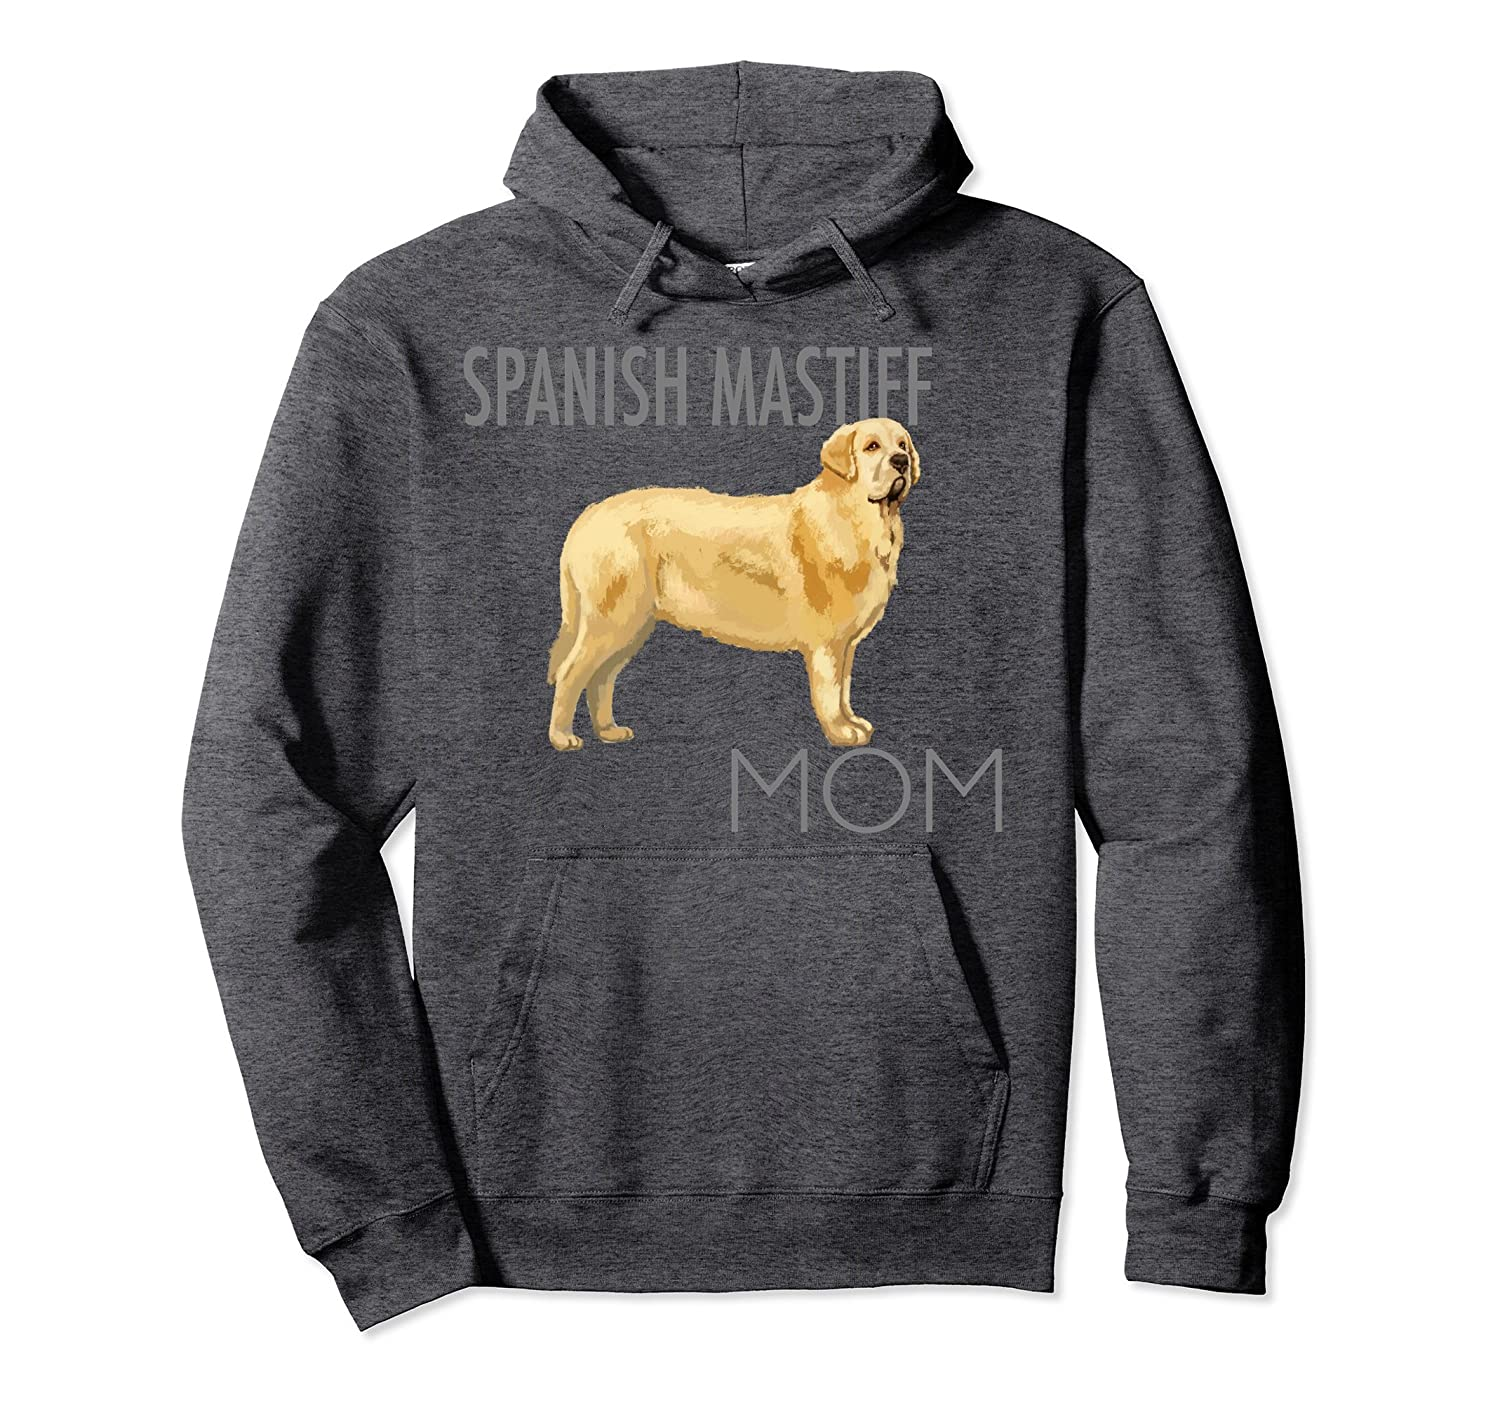 Spanish Mastiff Mom Dog Pullover Hoodie-ah my shirt one gift